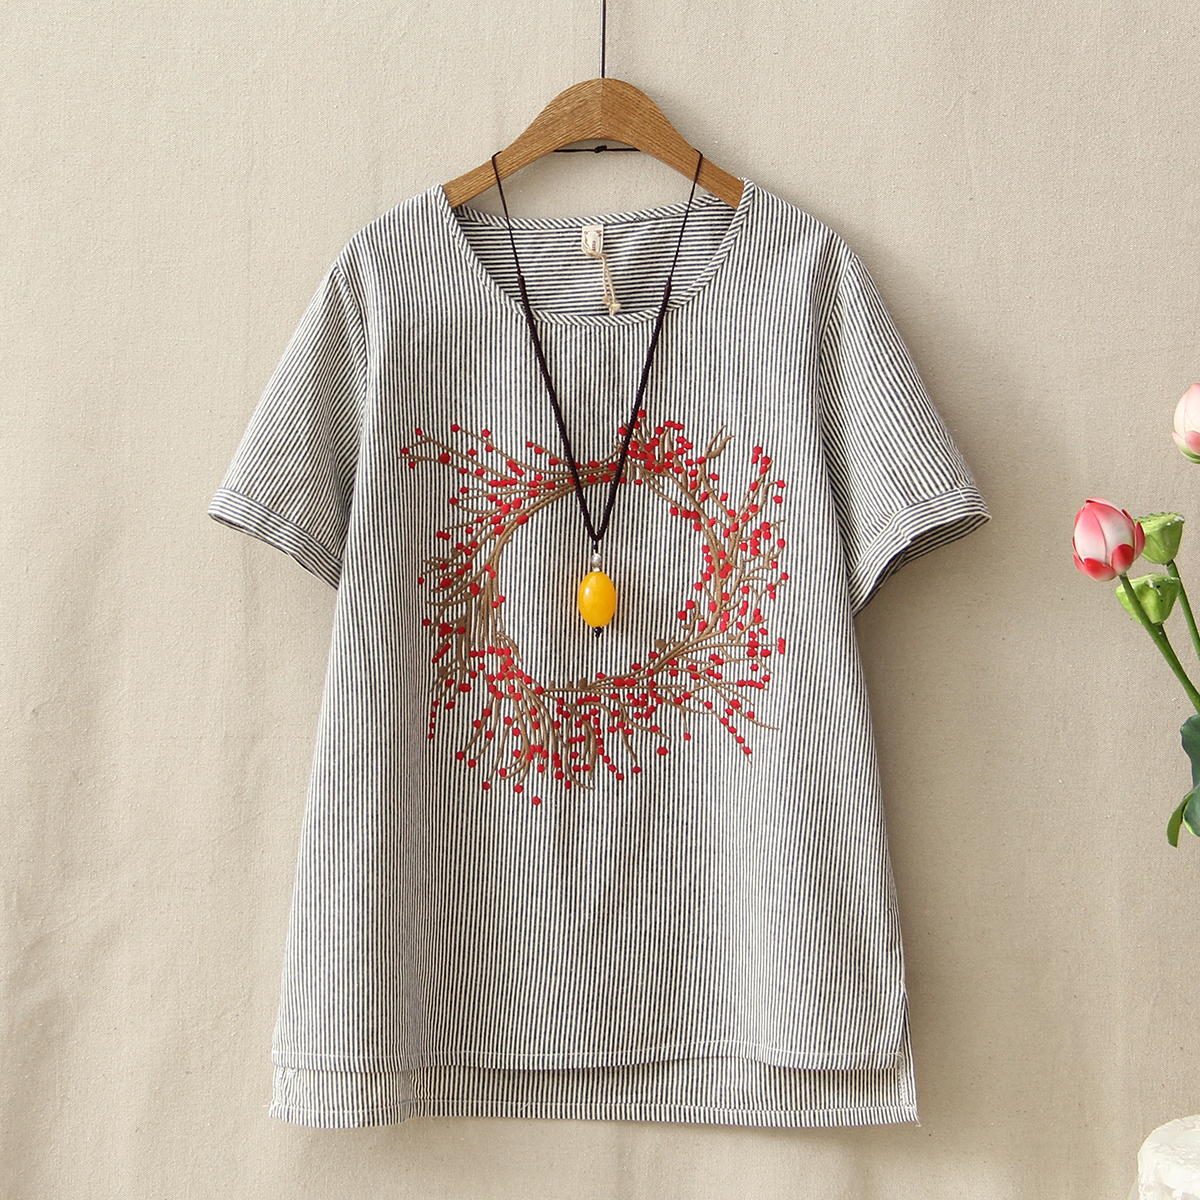 Summer Vintage Tees Tops Femme Short Sleeve Grey Loose Clothes 2018 Retro Floral Embroidery Cotton Linen T-Shirt Women Comfort